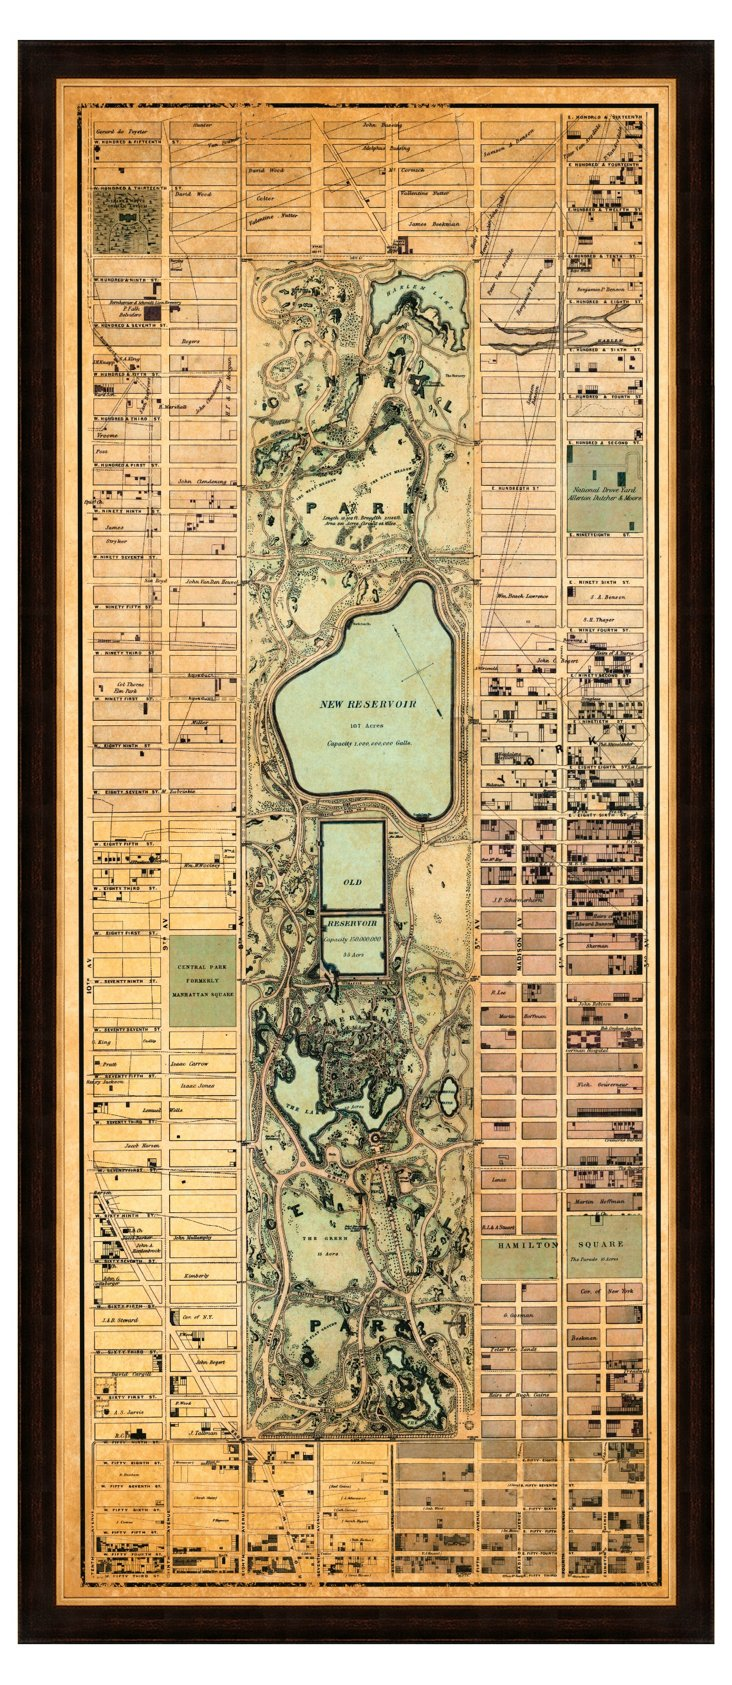 Map of Central Park